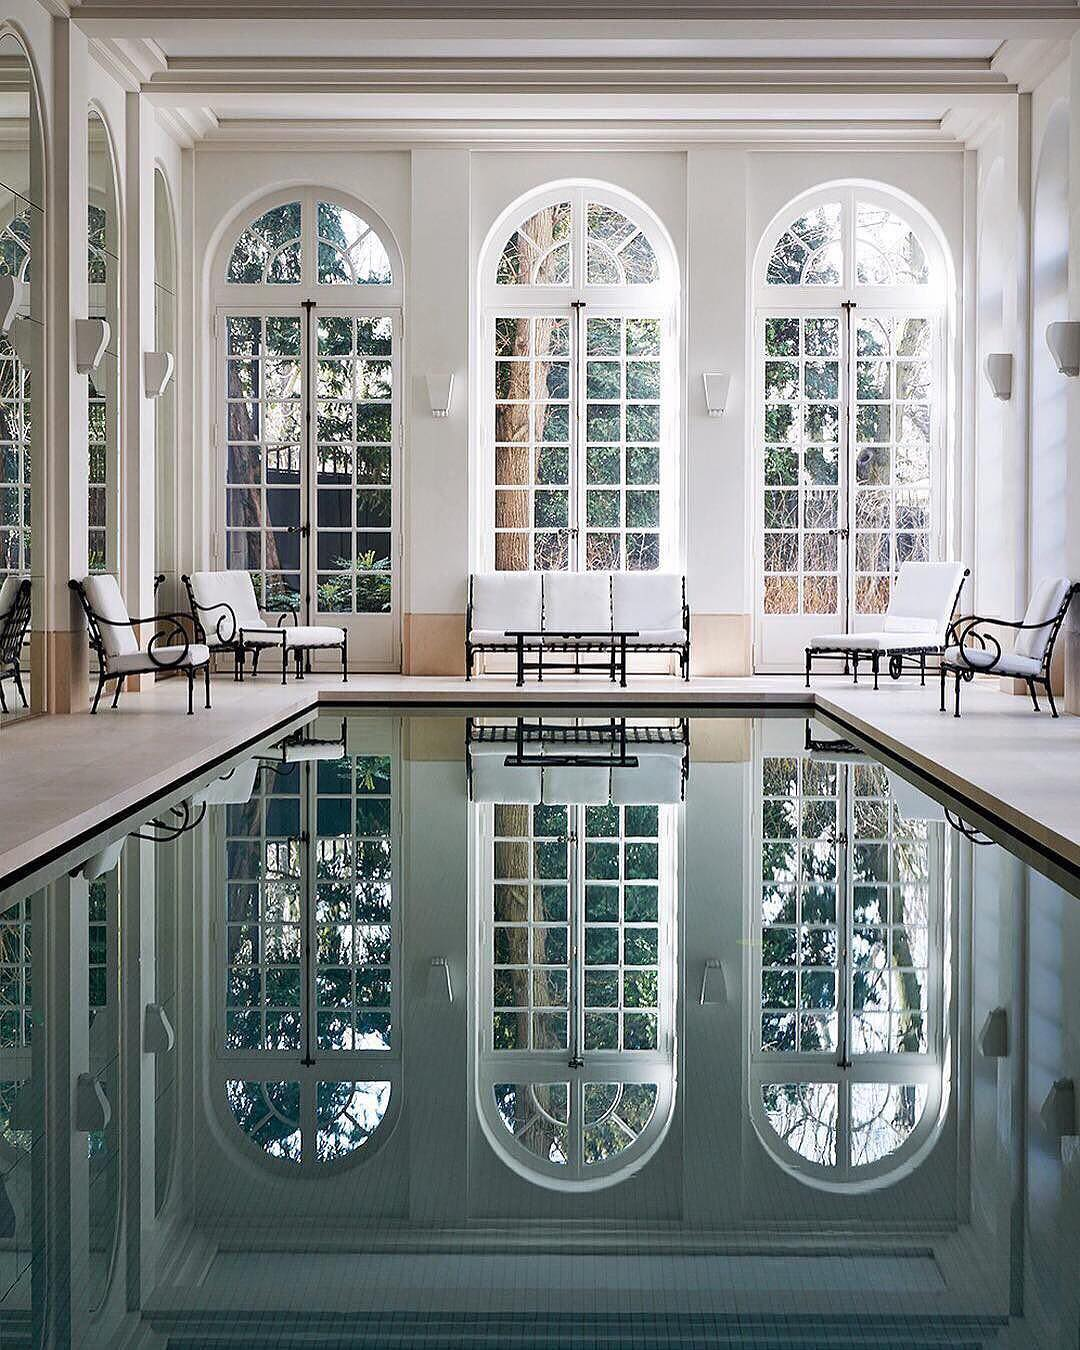 Taking the weekend toreflect photo by archdigest